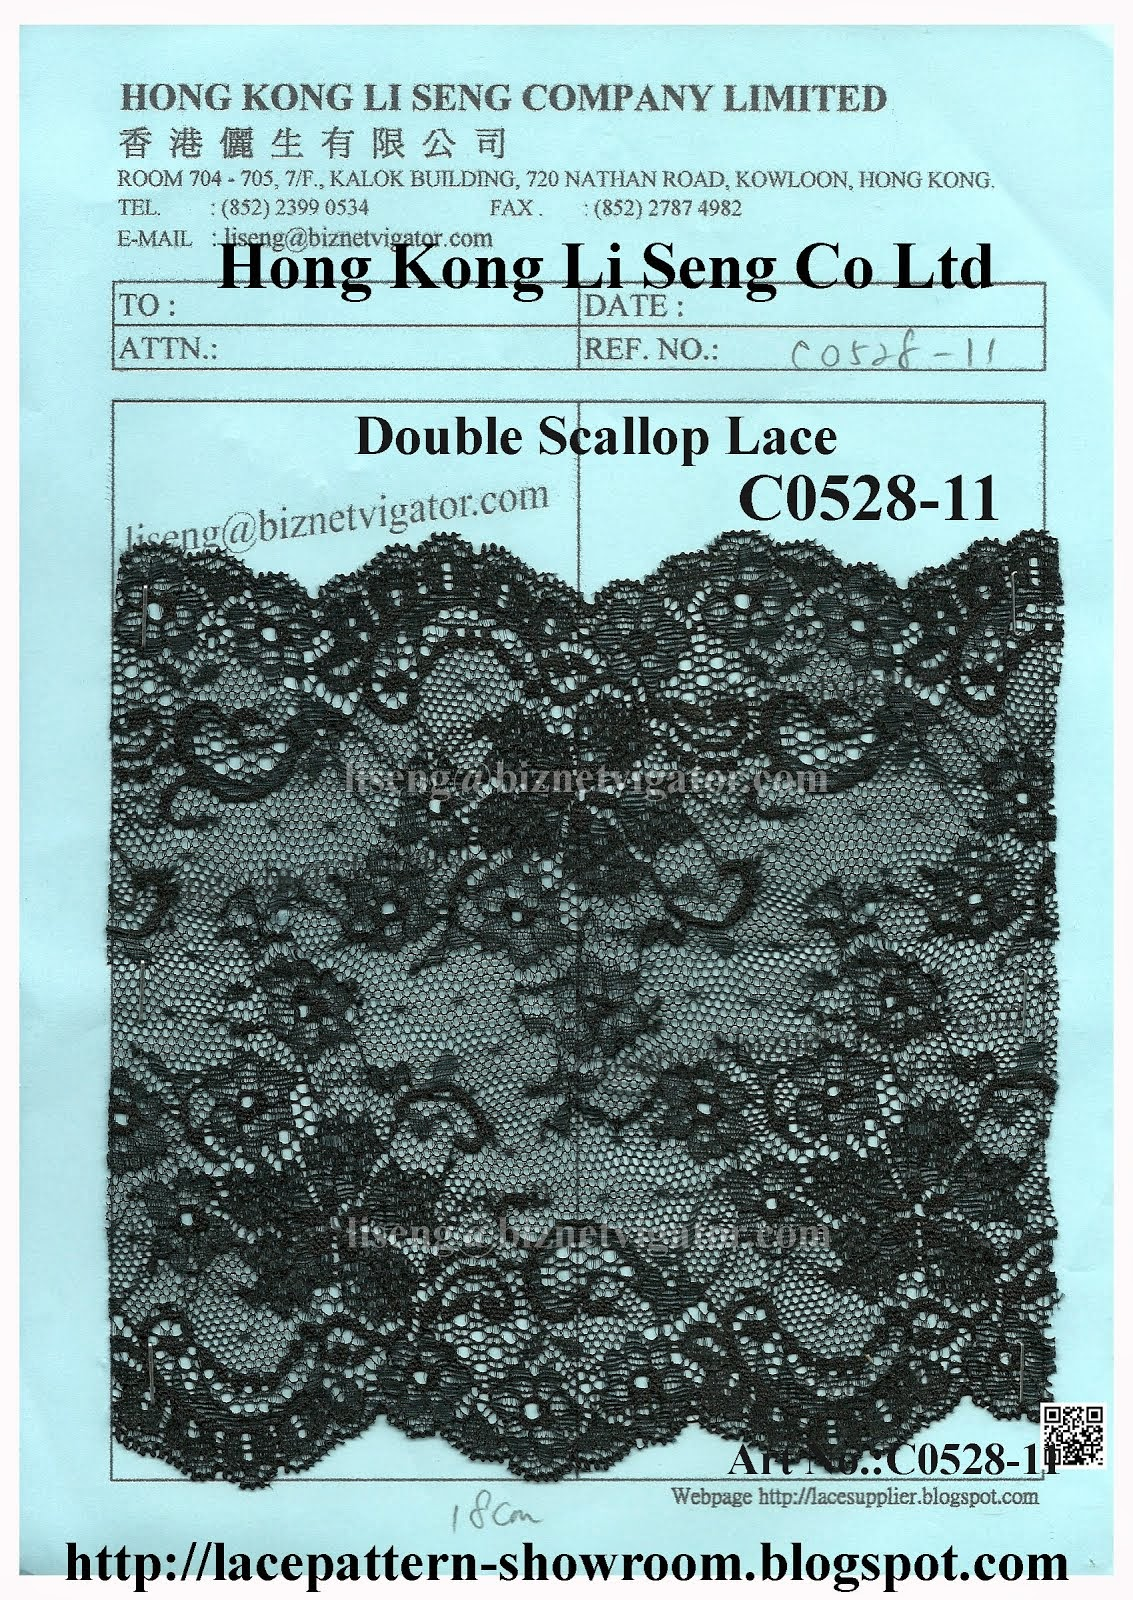 Double Scallop Lace Manufacturer Wholesaler and Supplier - Hong Kong Li Seng Co Ltd